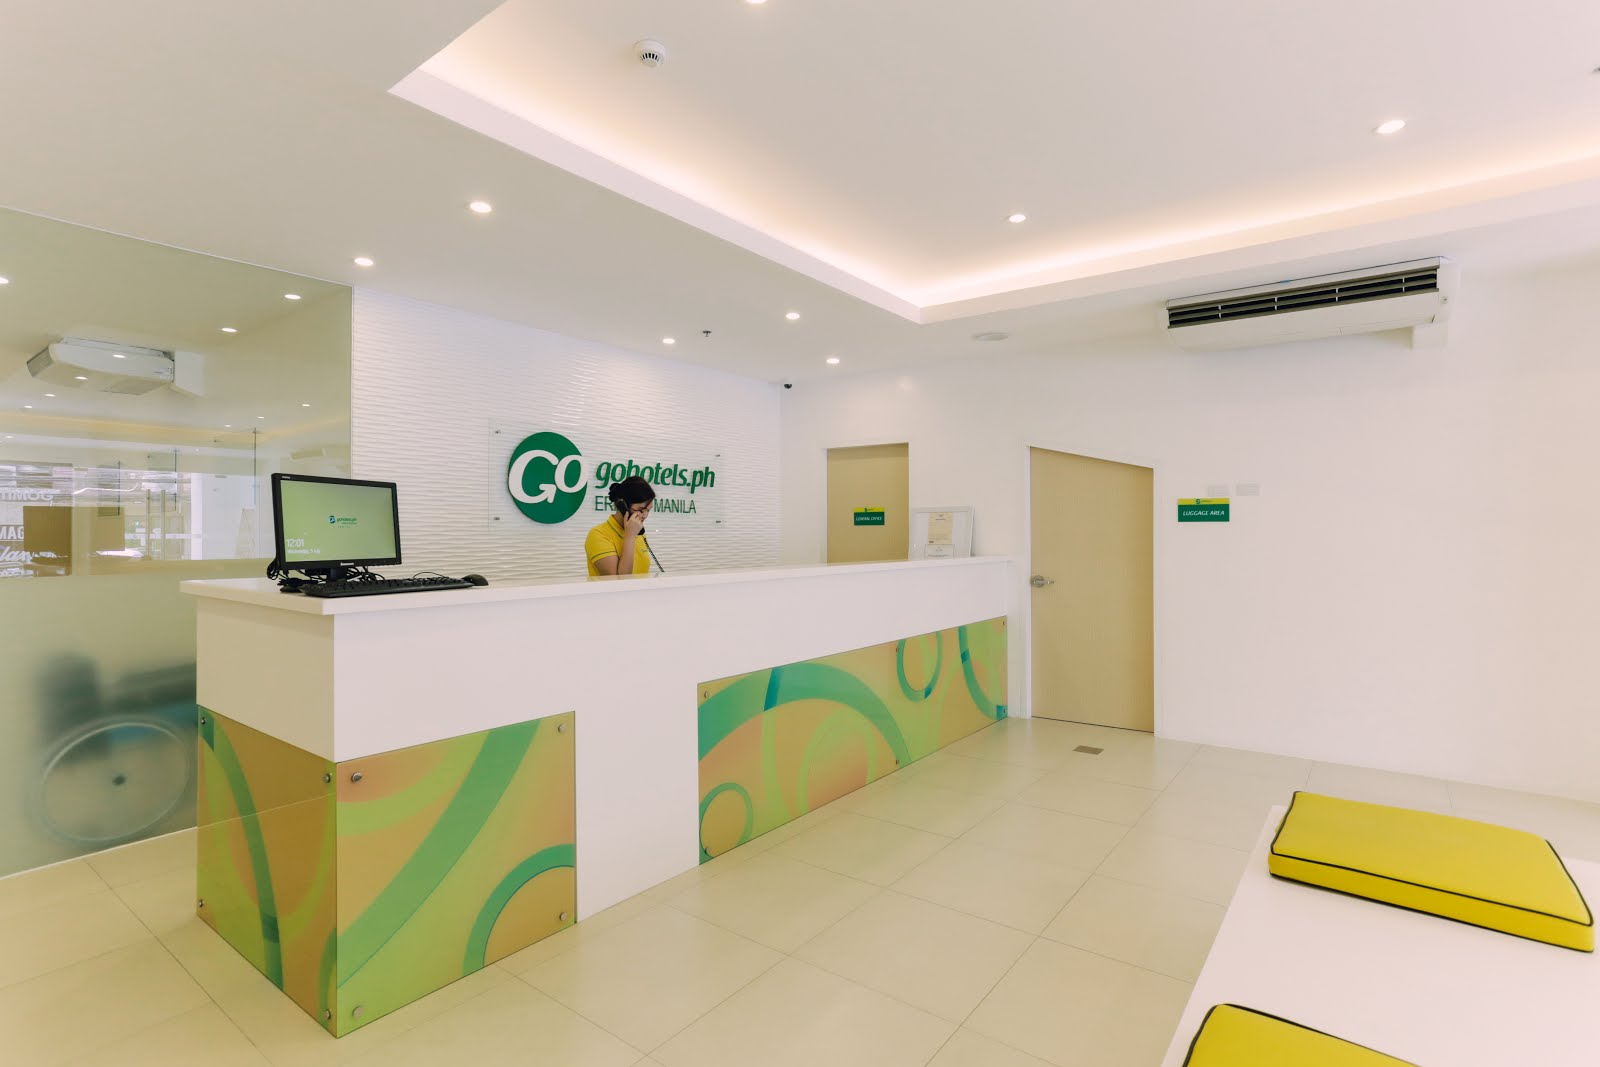 Filipino-owned Go Hotels Opens New Branches in Metro Manila - The